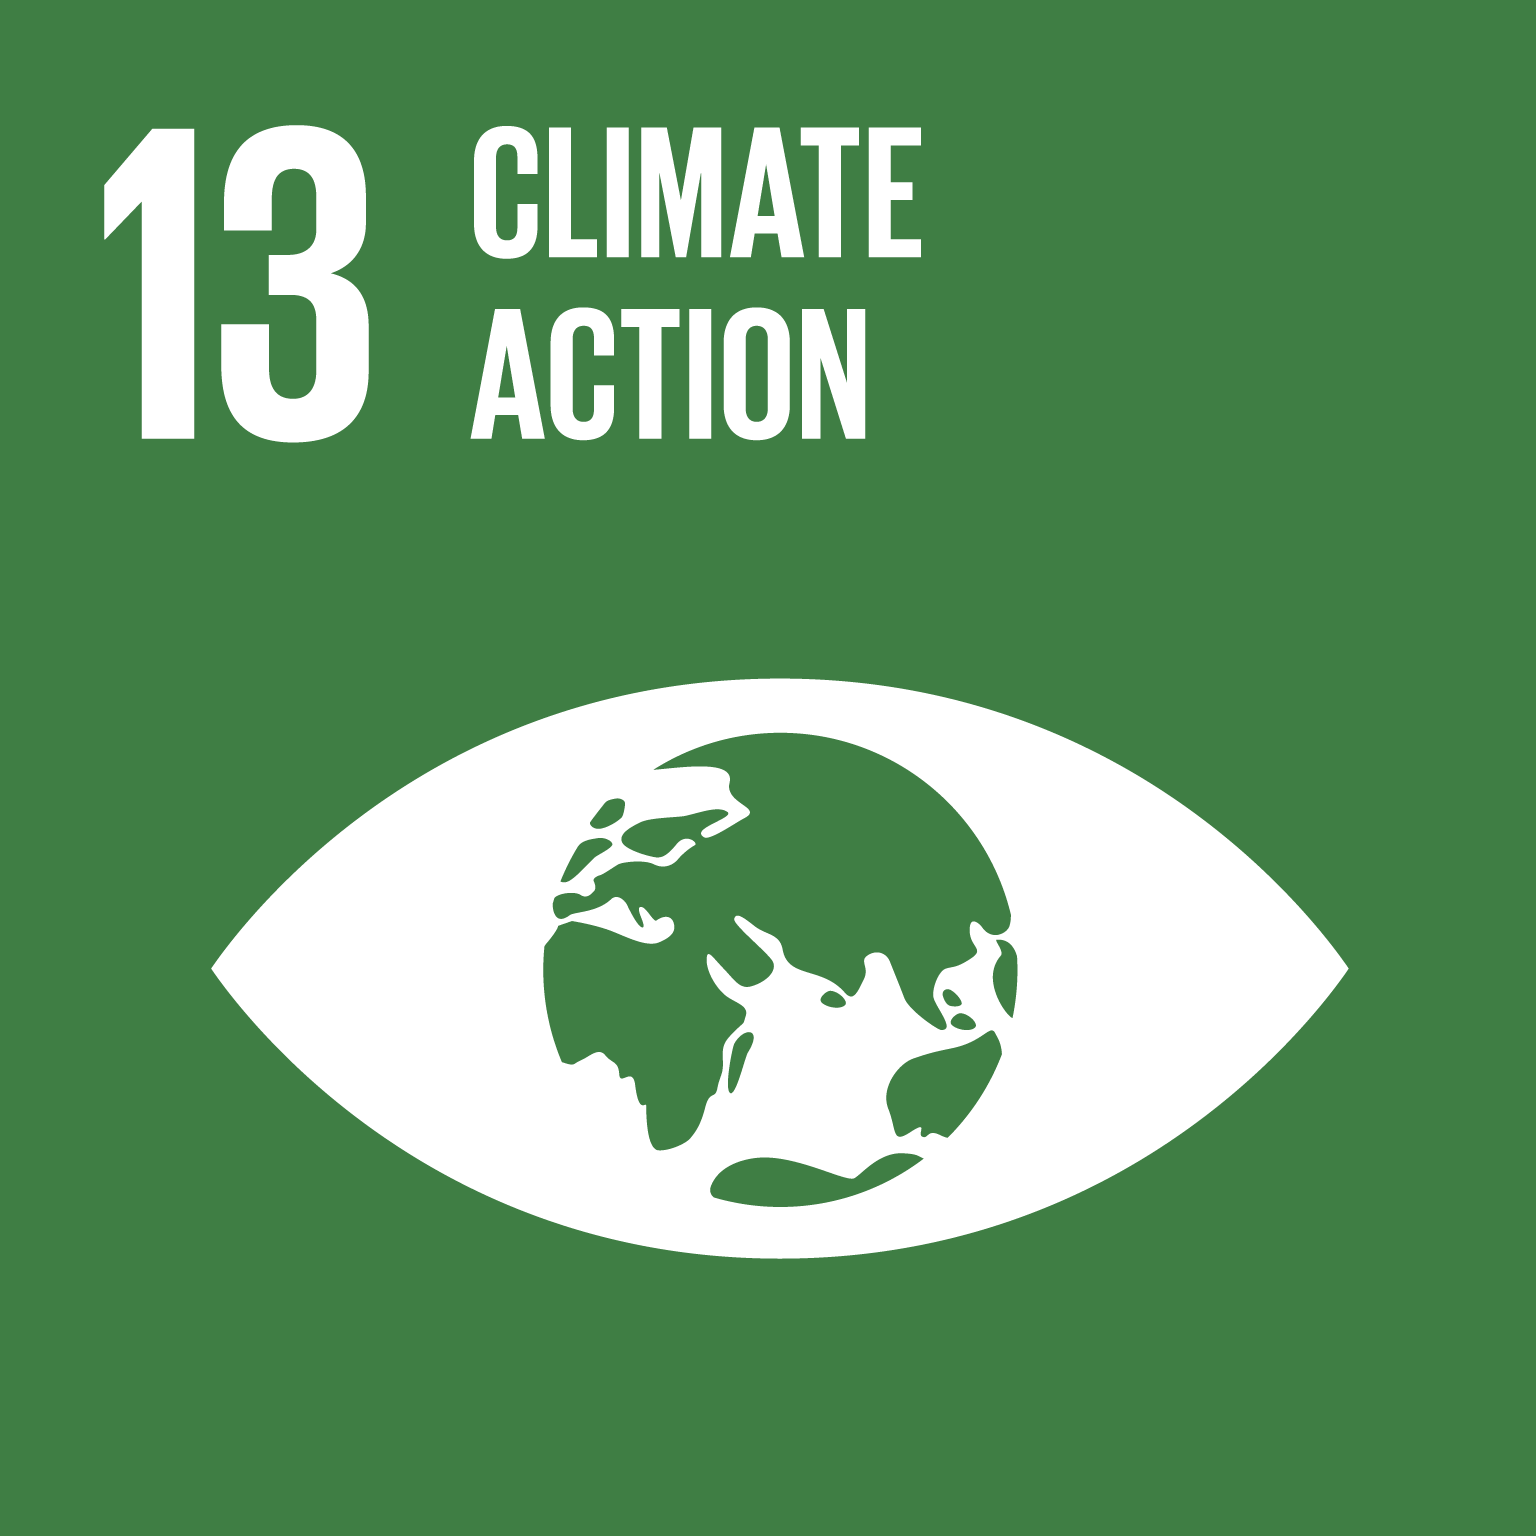 The SDGs icons of CLIMATE ACTION